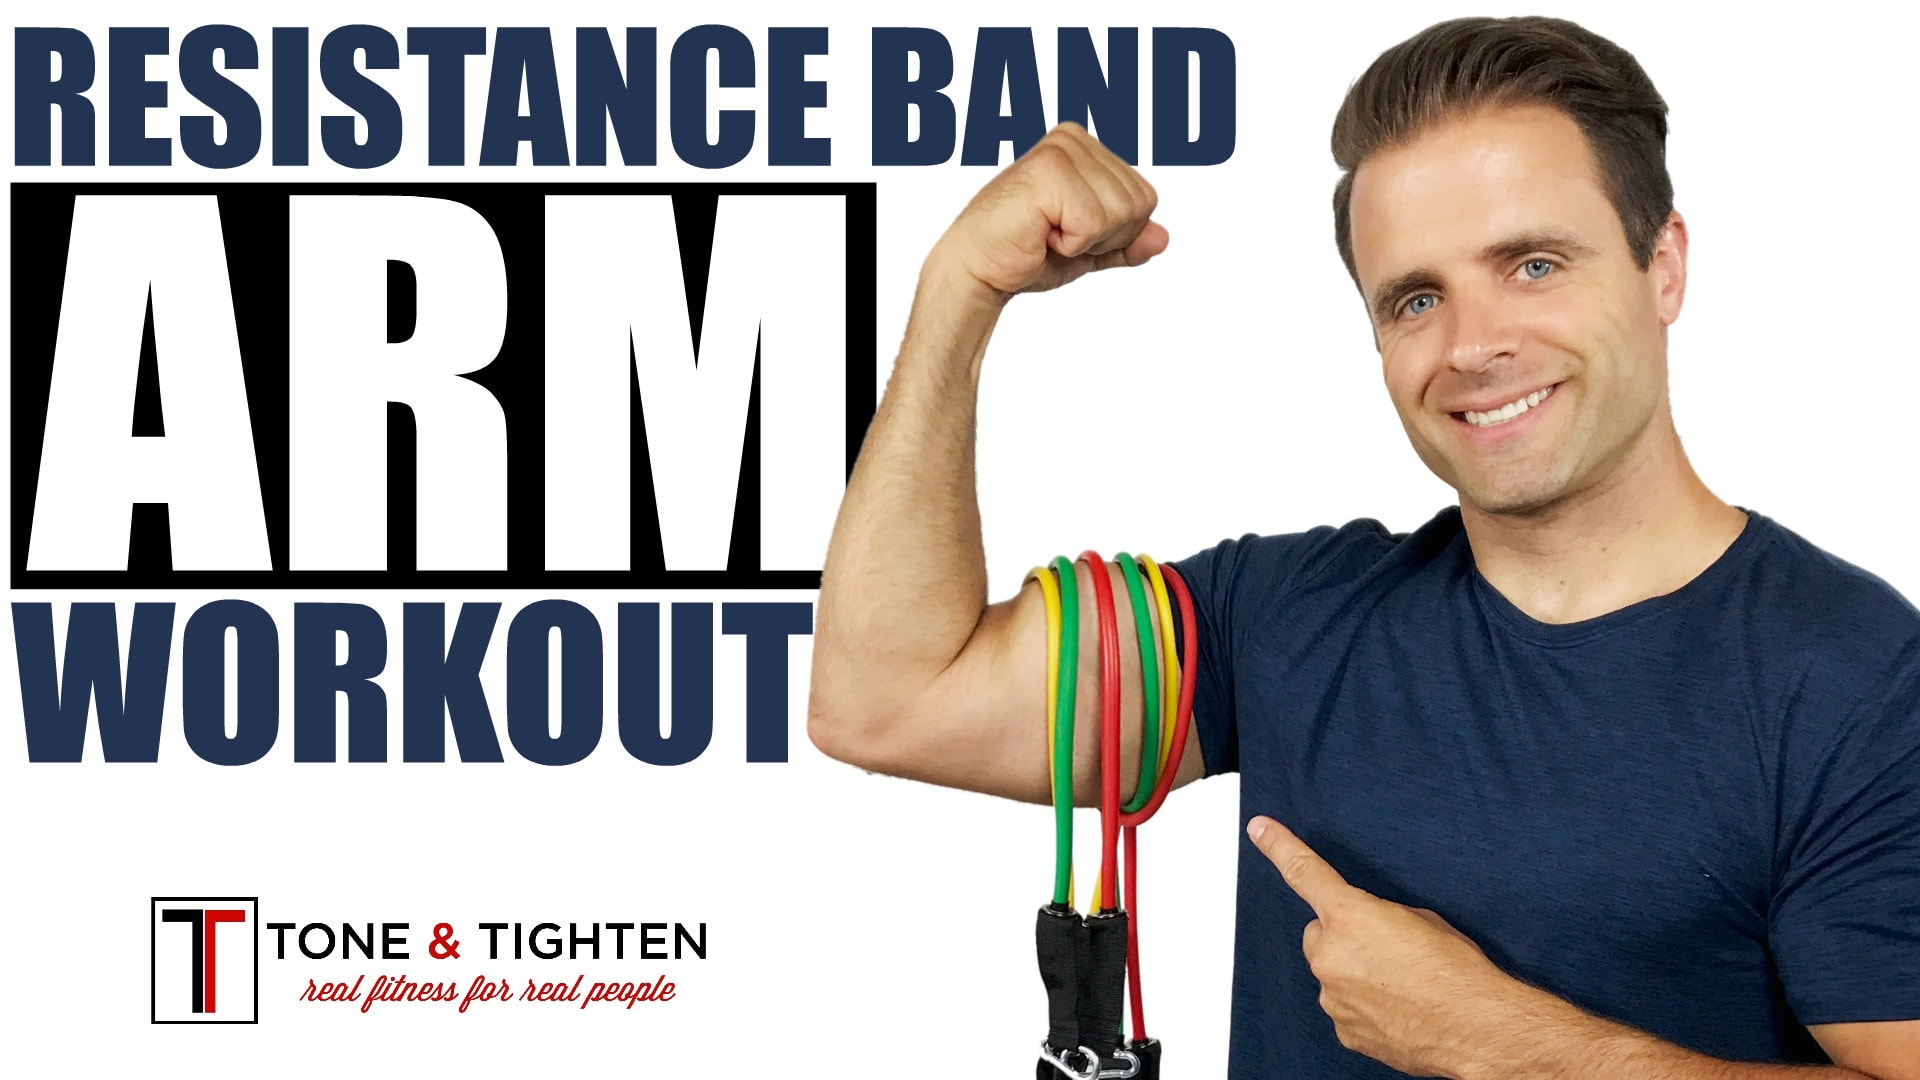 59a3aca48d0 Total Arm Workout With Resistance Band